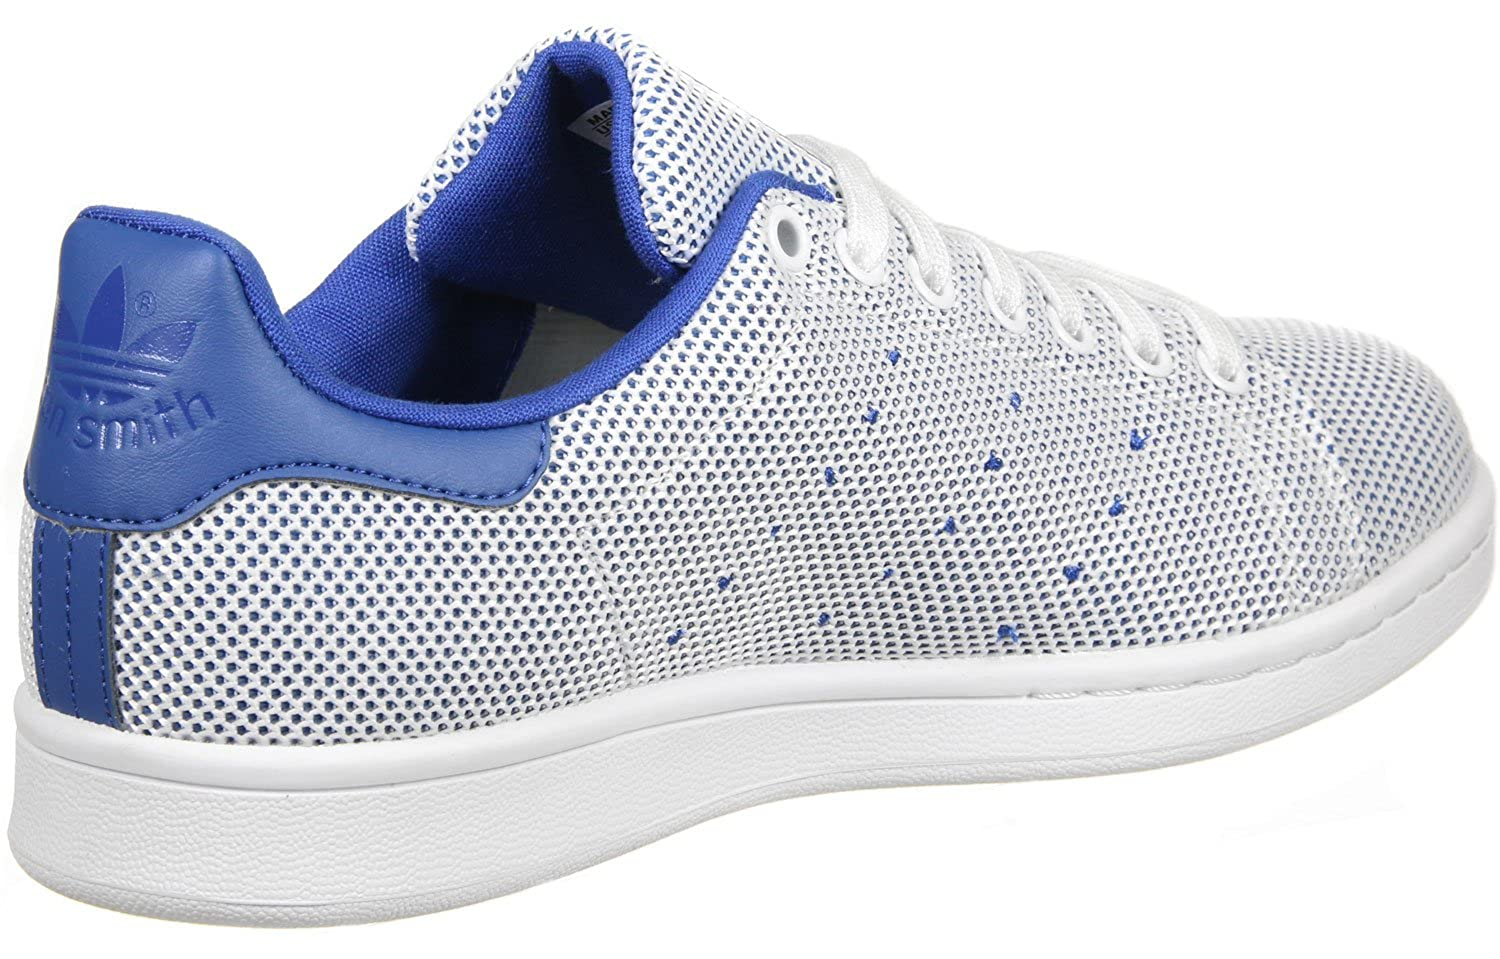 adidas Stan Smith Adicolor Calzado 4,0 eqt blue/ white